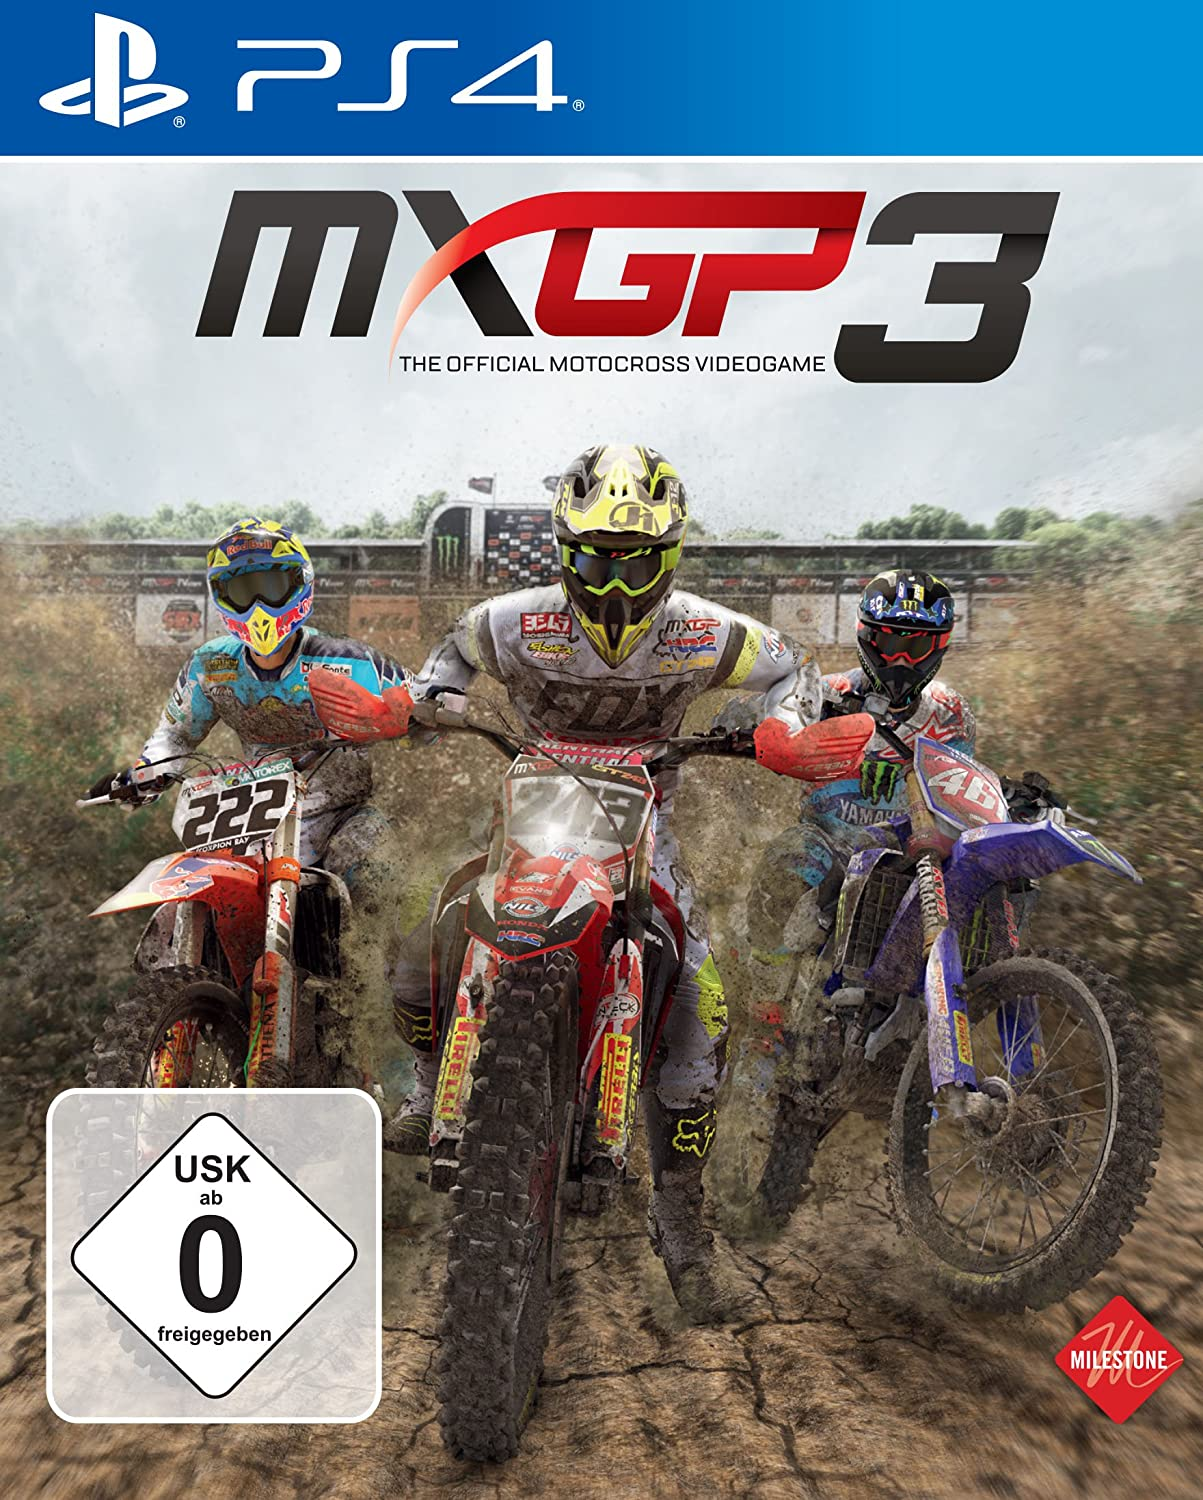 ps4 mx gp 3 mxgp 3 motorrad cross spiel neuware ebay. Black Bedroom Furniture Sets. Home Design Ideas